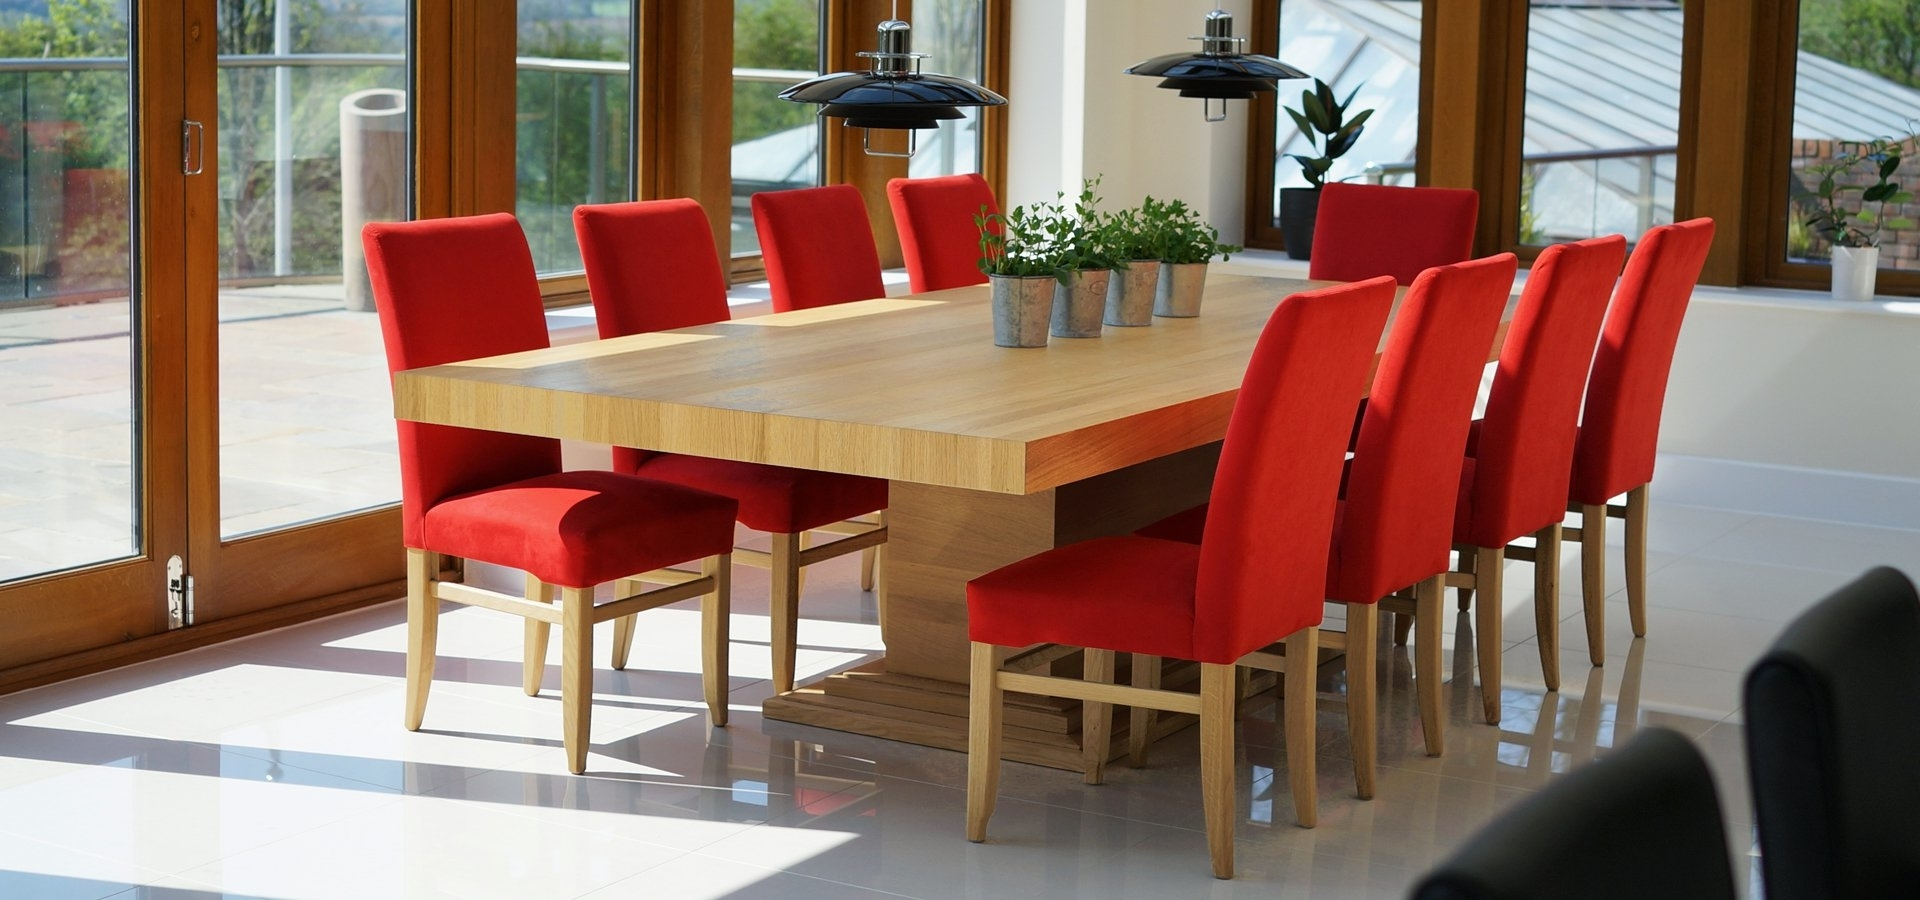 Oak Dining Suites Intended For Recent Contemporary Dining Tables & Furnitureberrydesign (View 18 of 25)